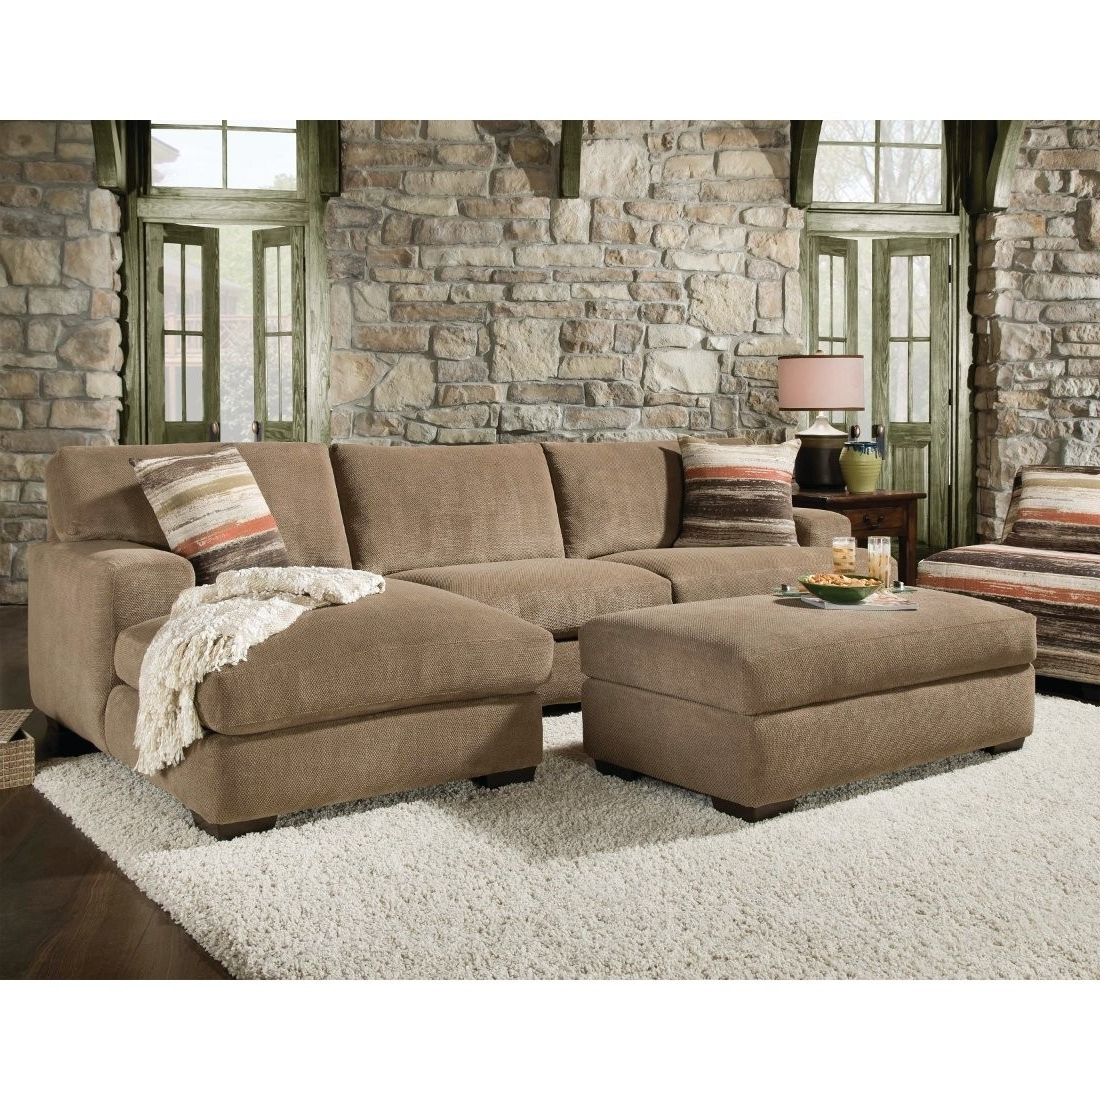 Beautiful Sectional Sofa With Chaise And Ottoman Pictures Inside Trendy Double Chaise Sectionals (View 2 of 15)